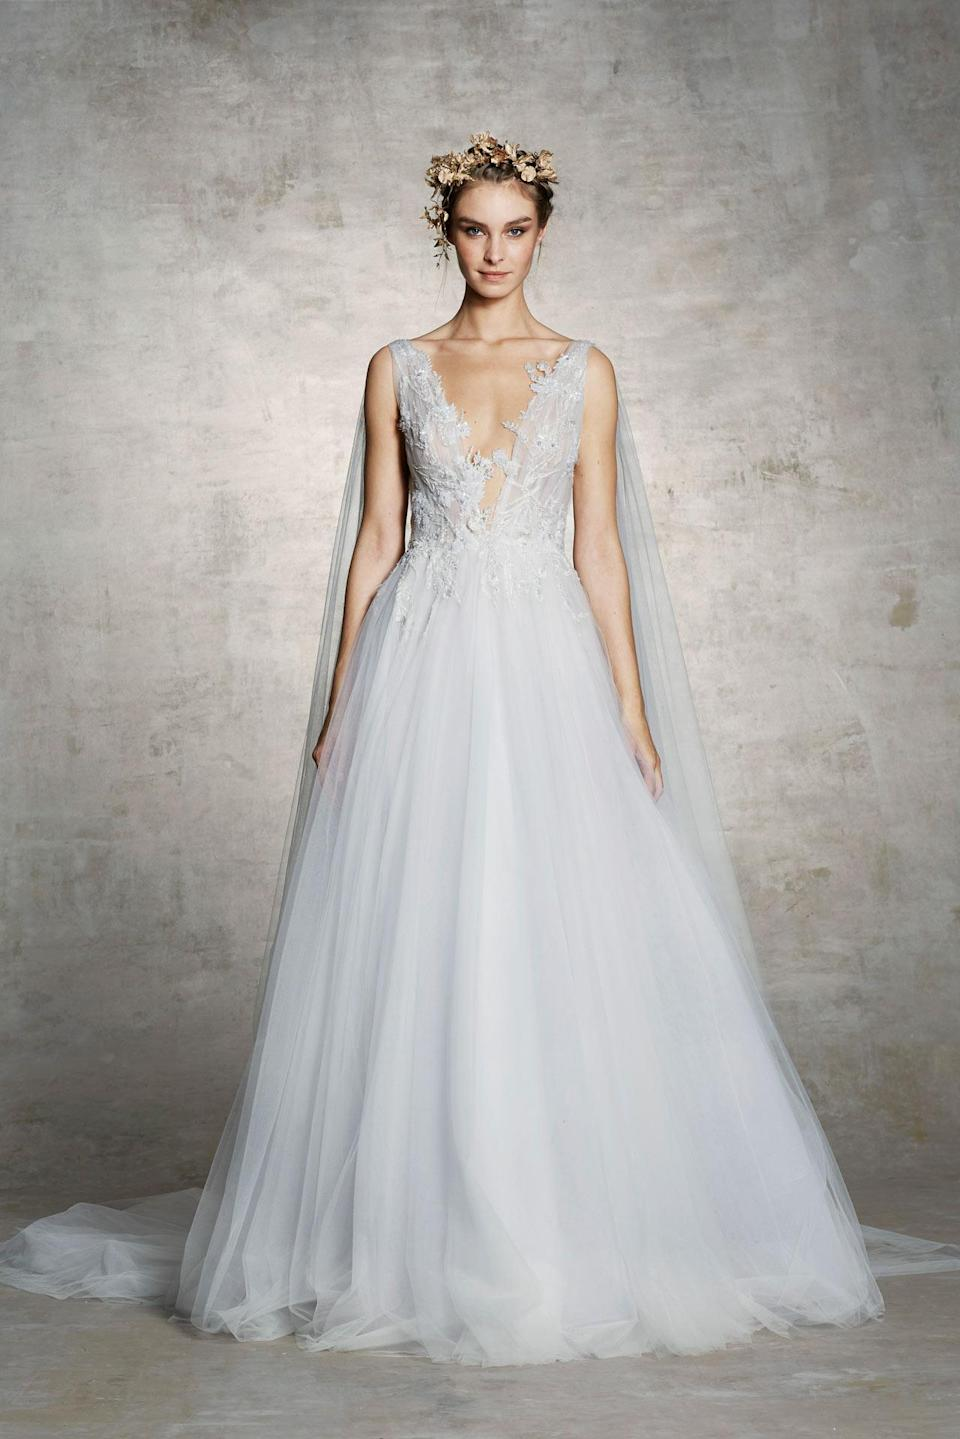 <p>Tulle dress with long tulle cape. (Photo: Courtesy of Marchesa) </p>